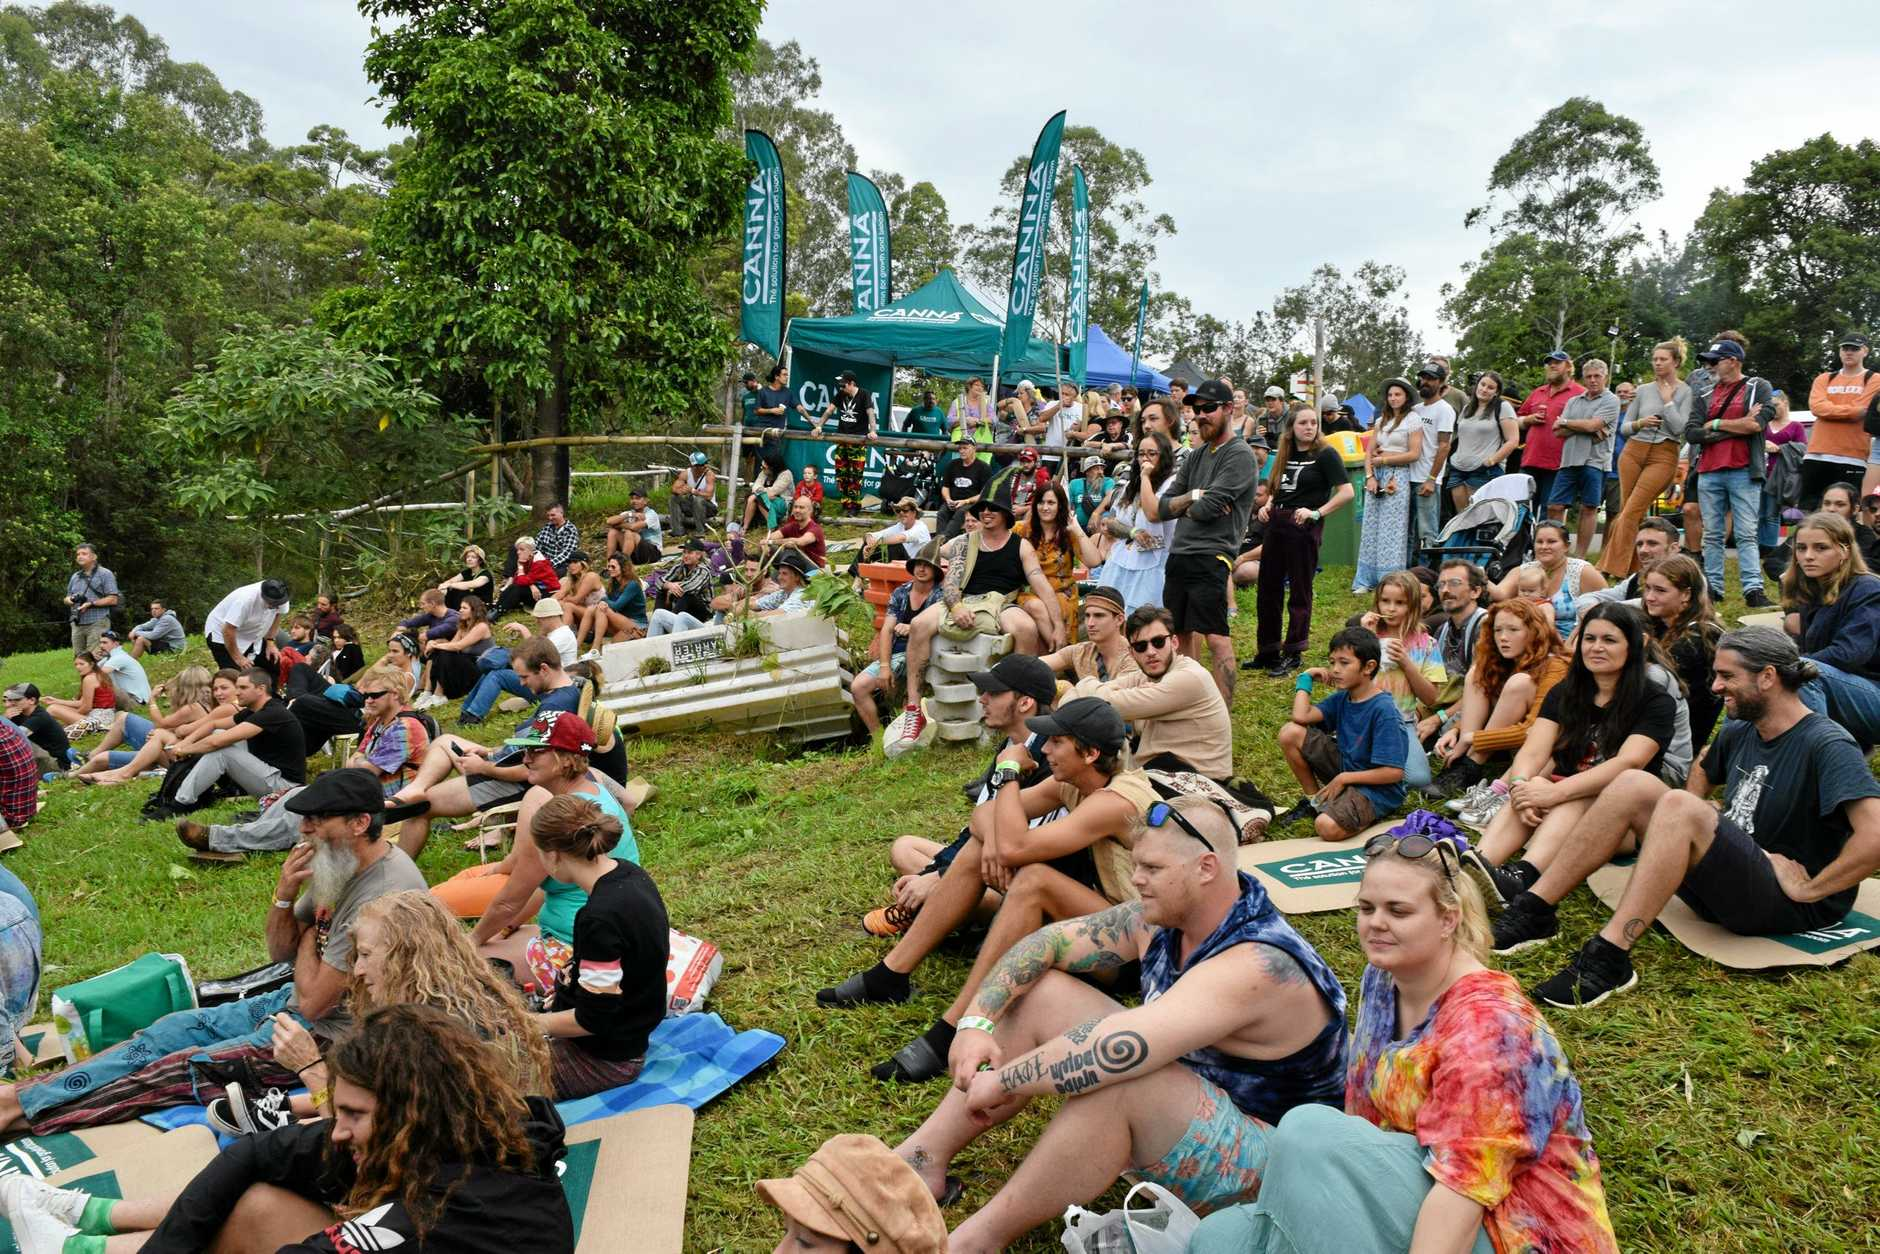 MardiGrass 2019 Cannabis Law Reform Rally & Gathering.